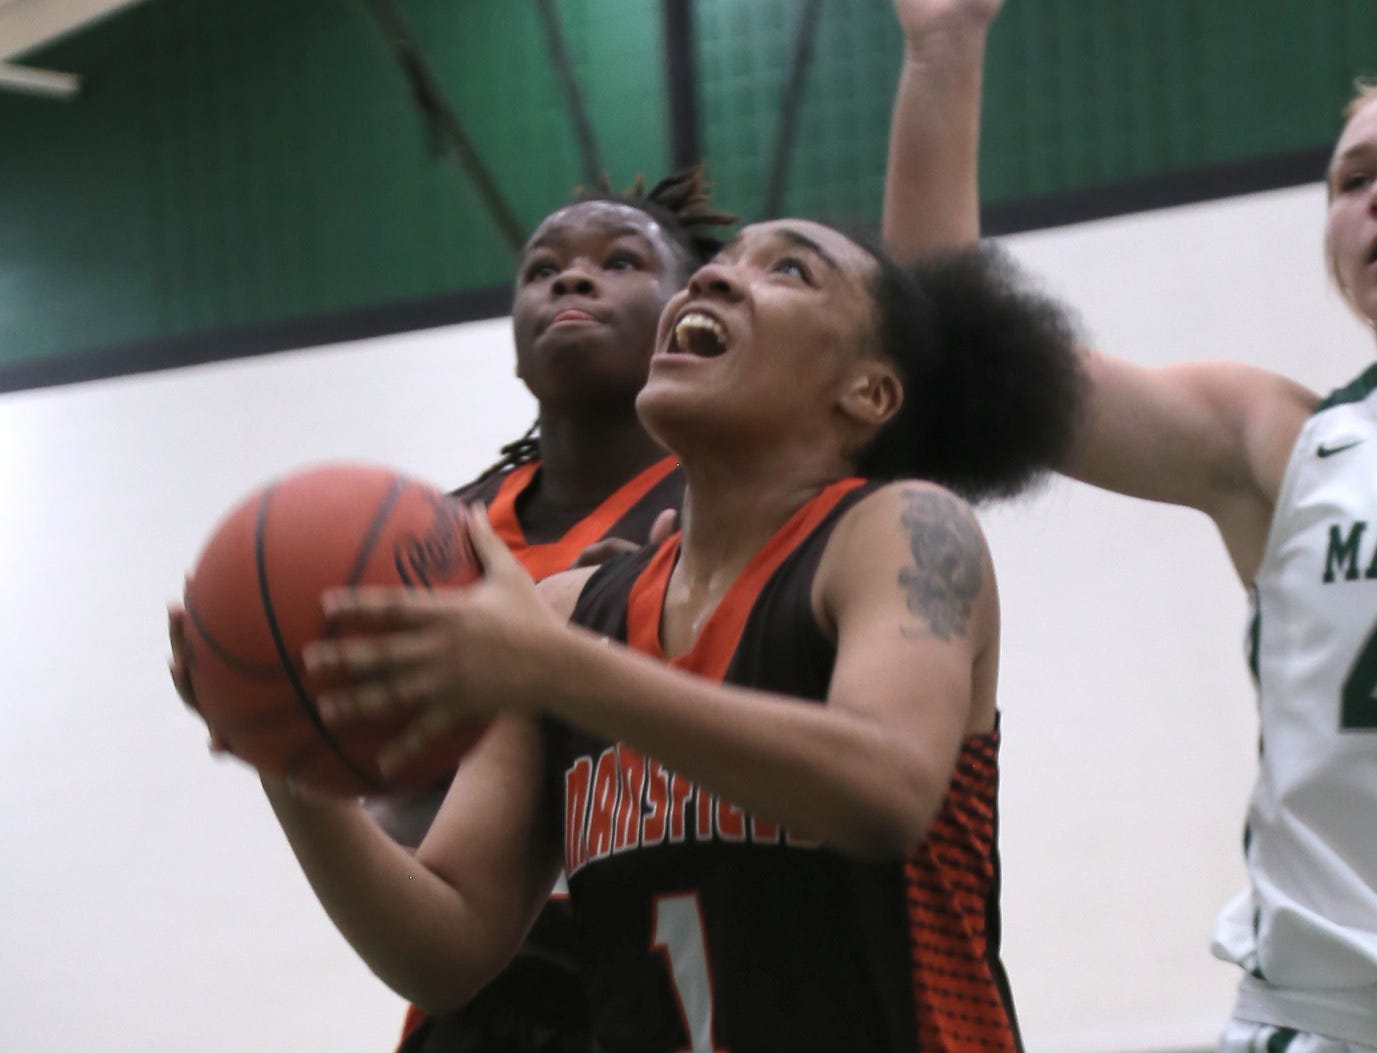 Mansfield Senior's Talayzha Catchings attempts a shot while playing at Madison on Thursday.